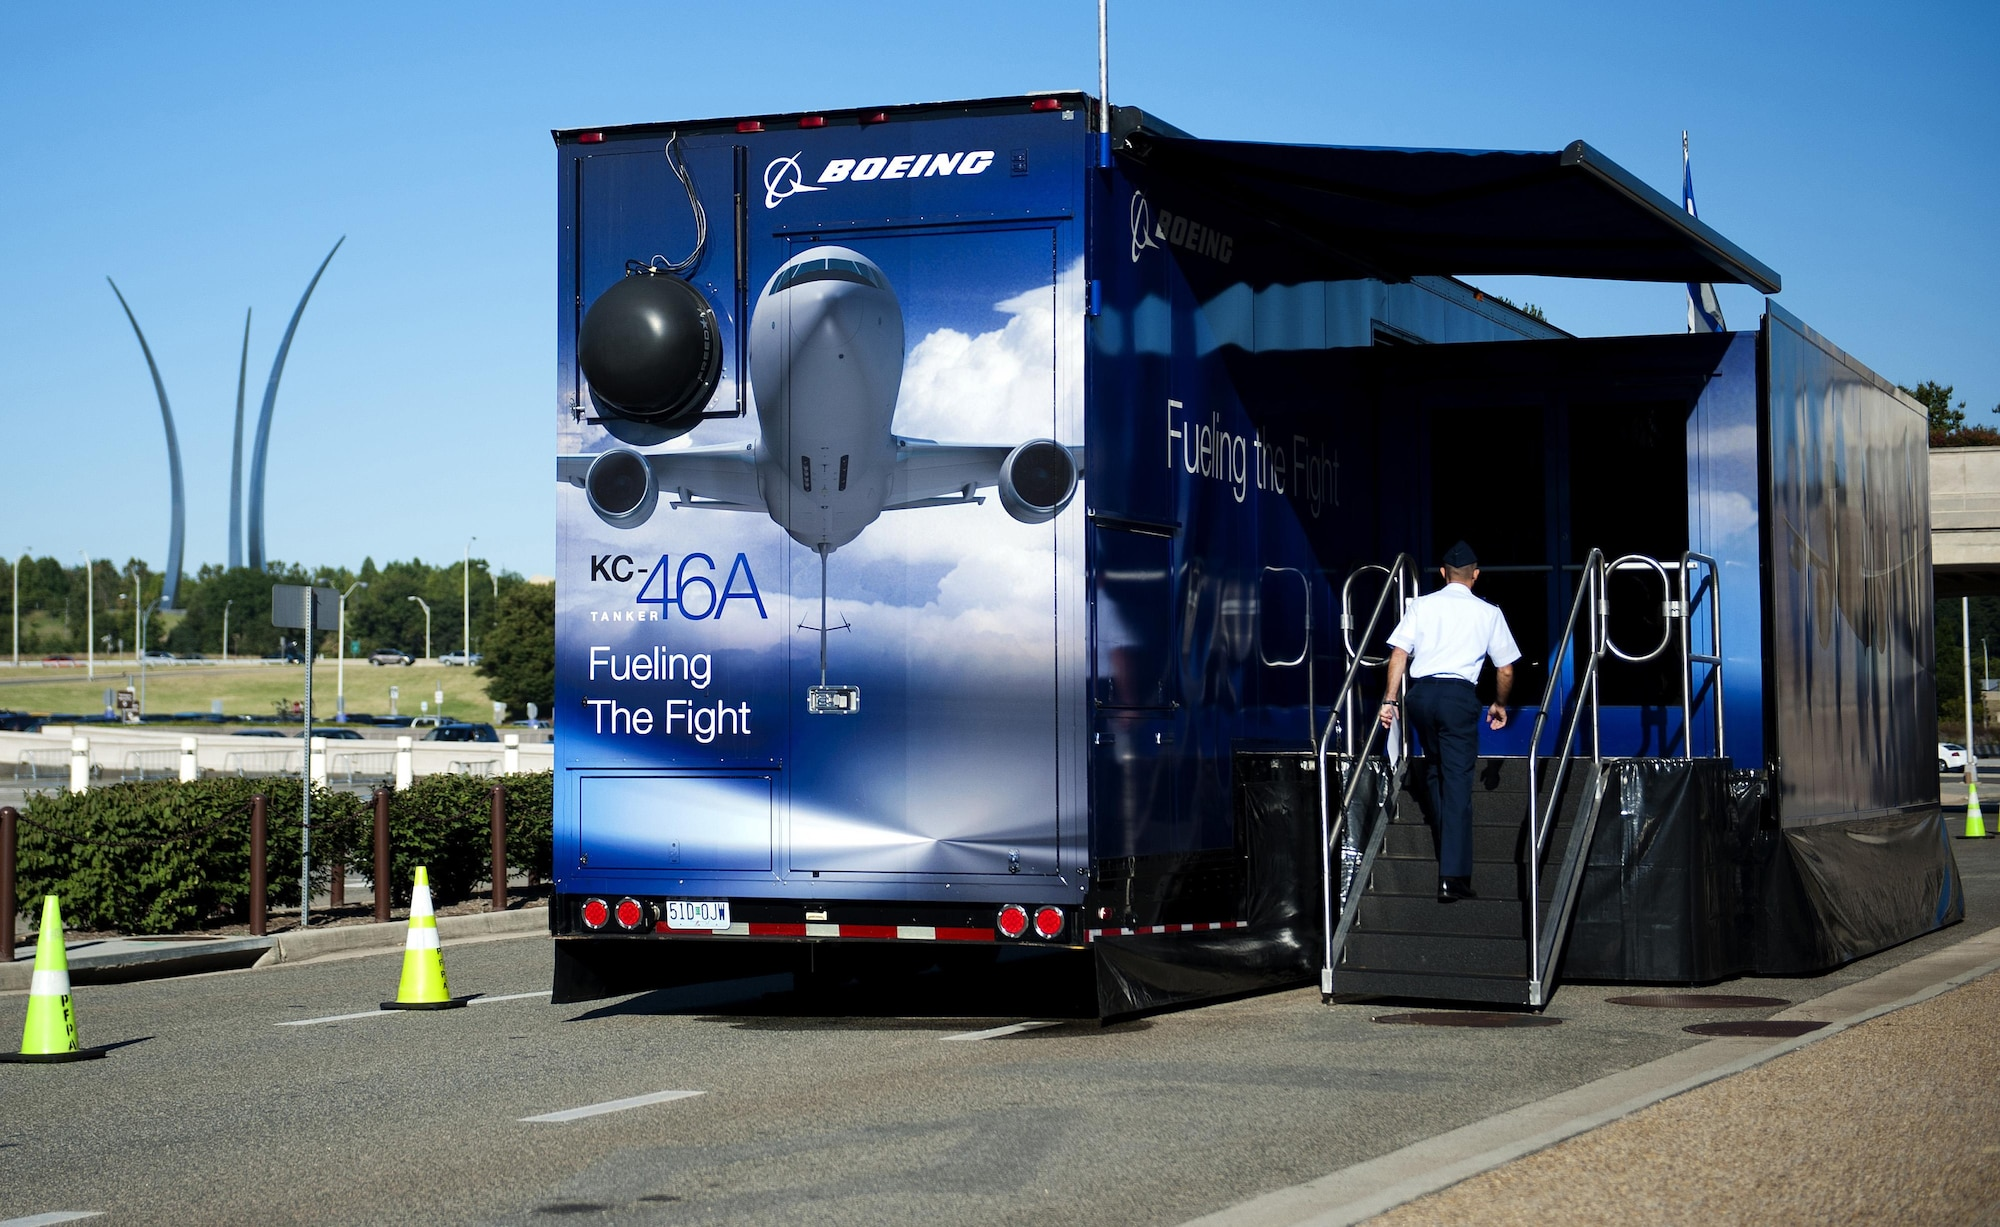 Boeing, the lead contractor for the Air Force's new refueling tanker, brought their simulator to the Pentagon Sept. 4, 2013.  During the visit, Airmen were able to learn about the aircraft and fly the KC-46 simulator.